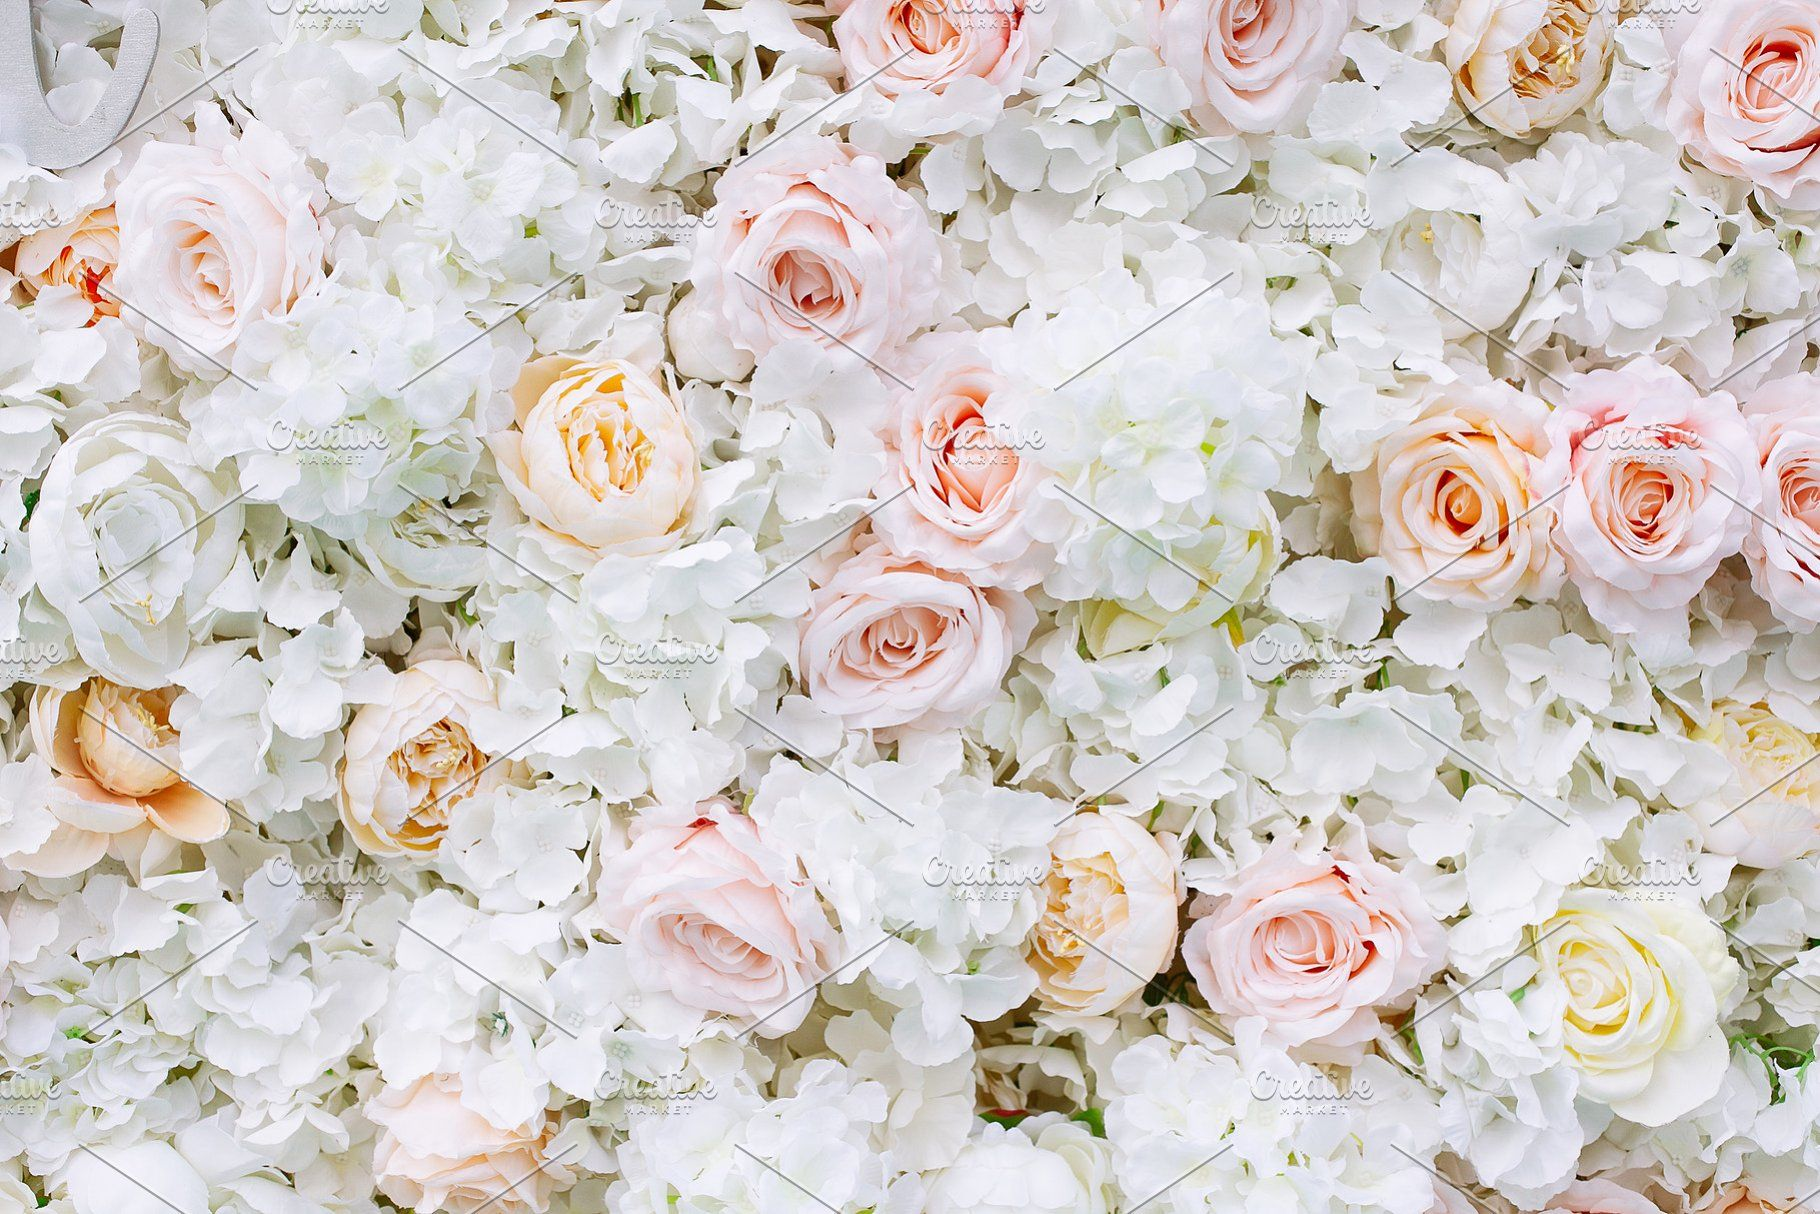 Flowers Wall Background White Roses White Roses Background White Rose Flower Rose Flower Wallpaper